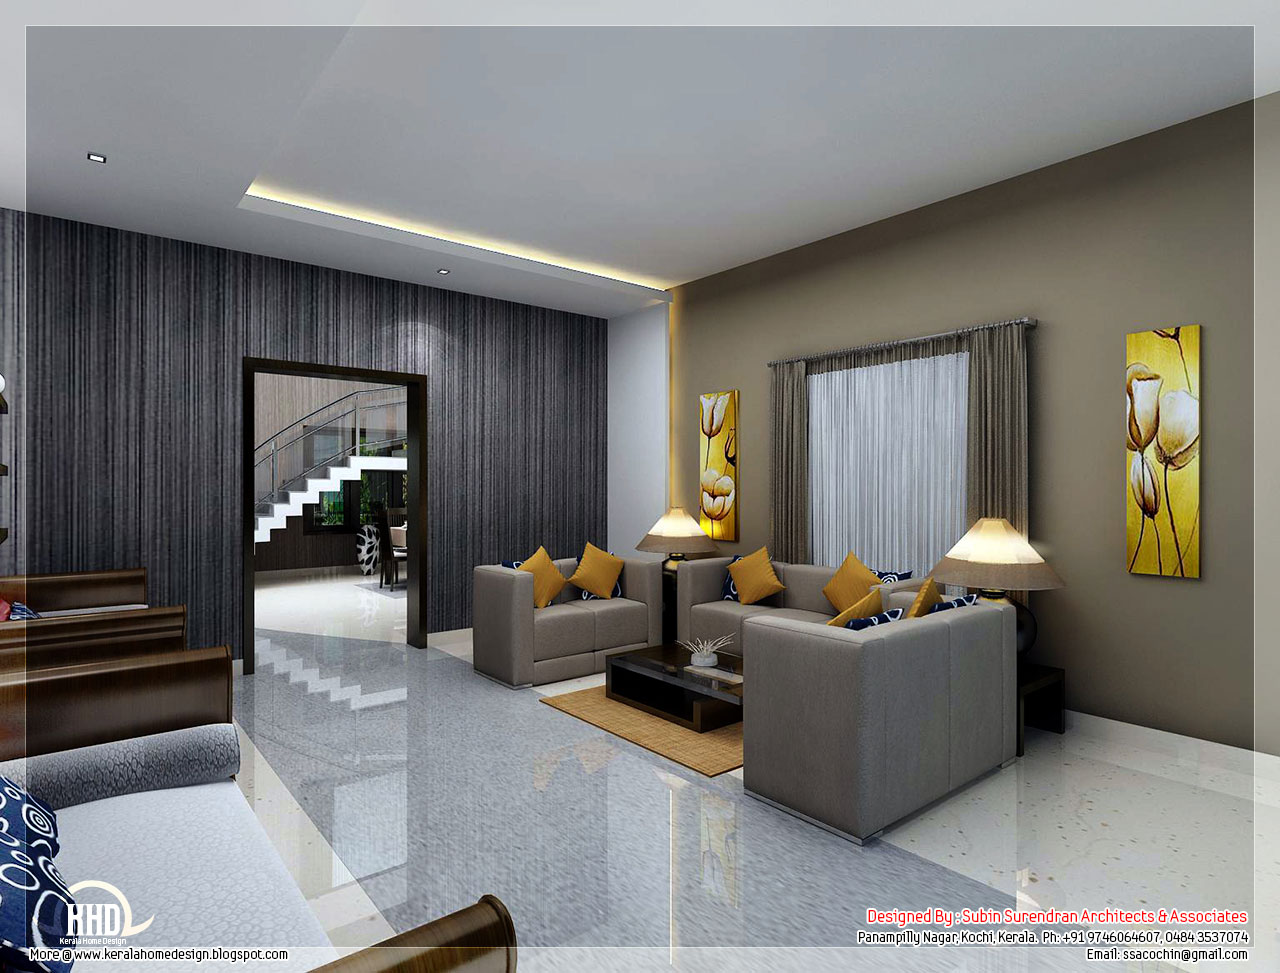 Awesome 3d interior renderings kerala home design and for Room interior design ideas